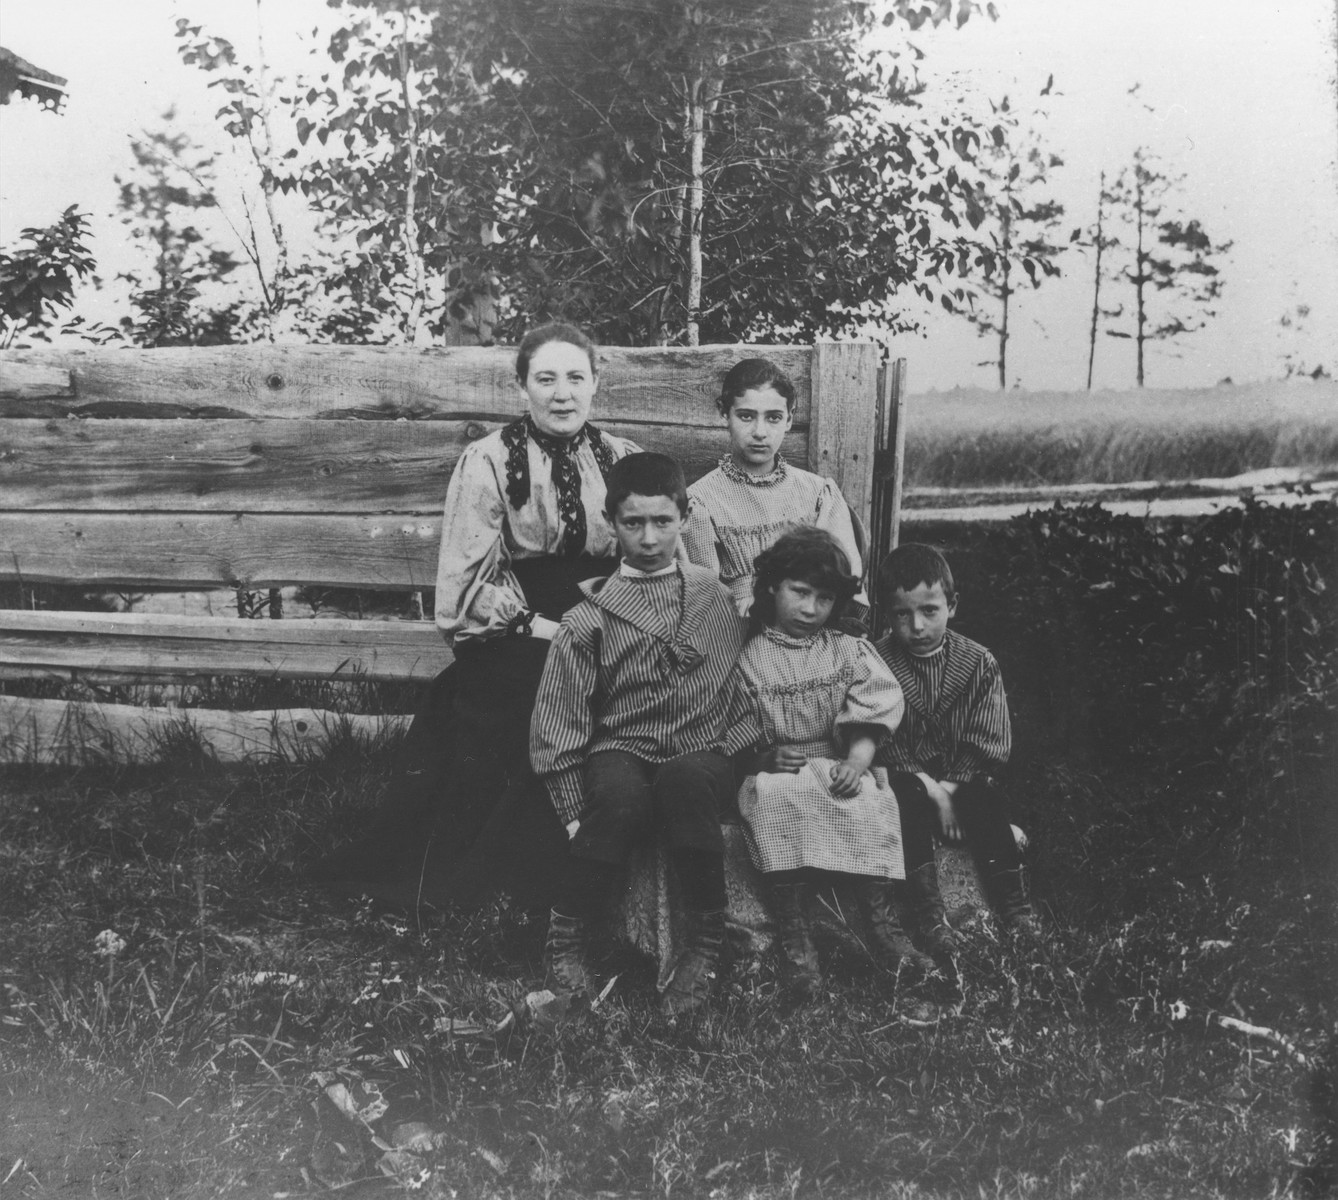 Group portrait of the Mikolaevsky family at their dacha in the village of Strelna, a suburb of St. Petersburg.